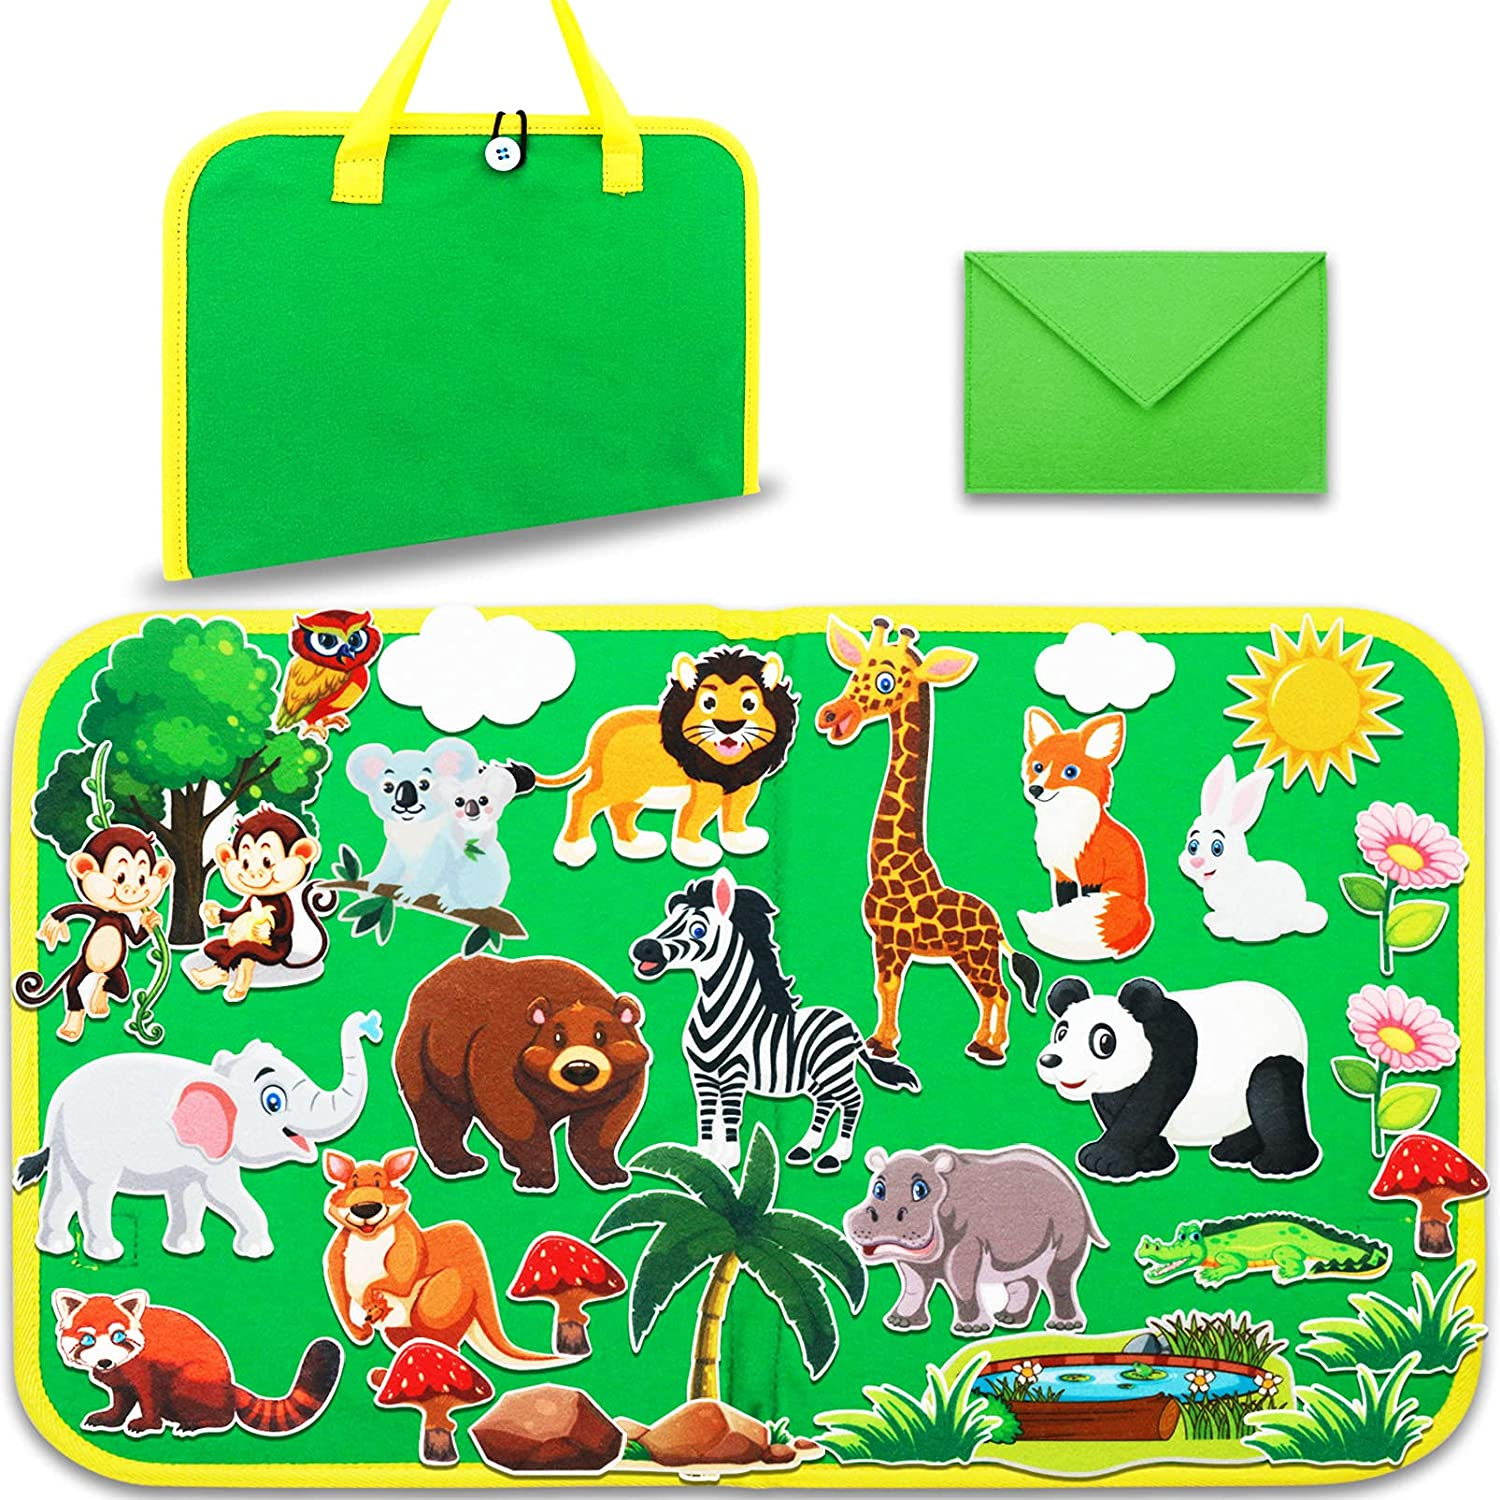 Craftstory Free shipping Animals Travel Felt-Board wholesale Story Toddlers Set for 32